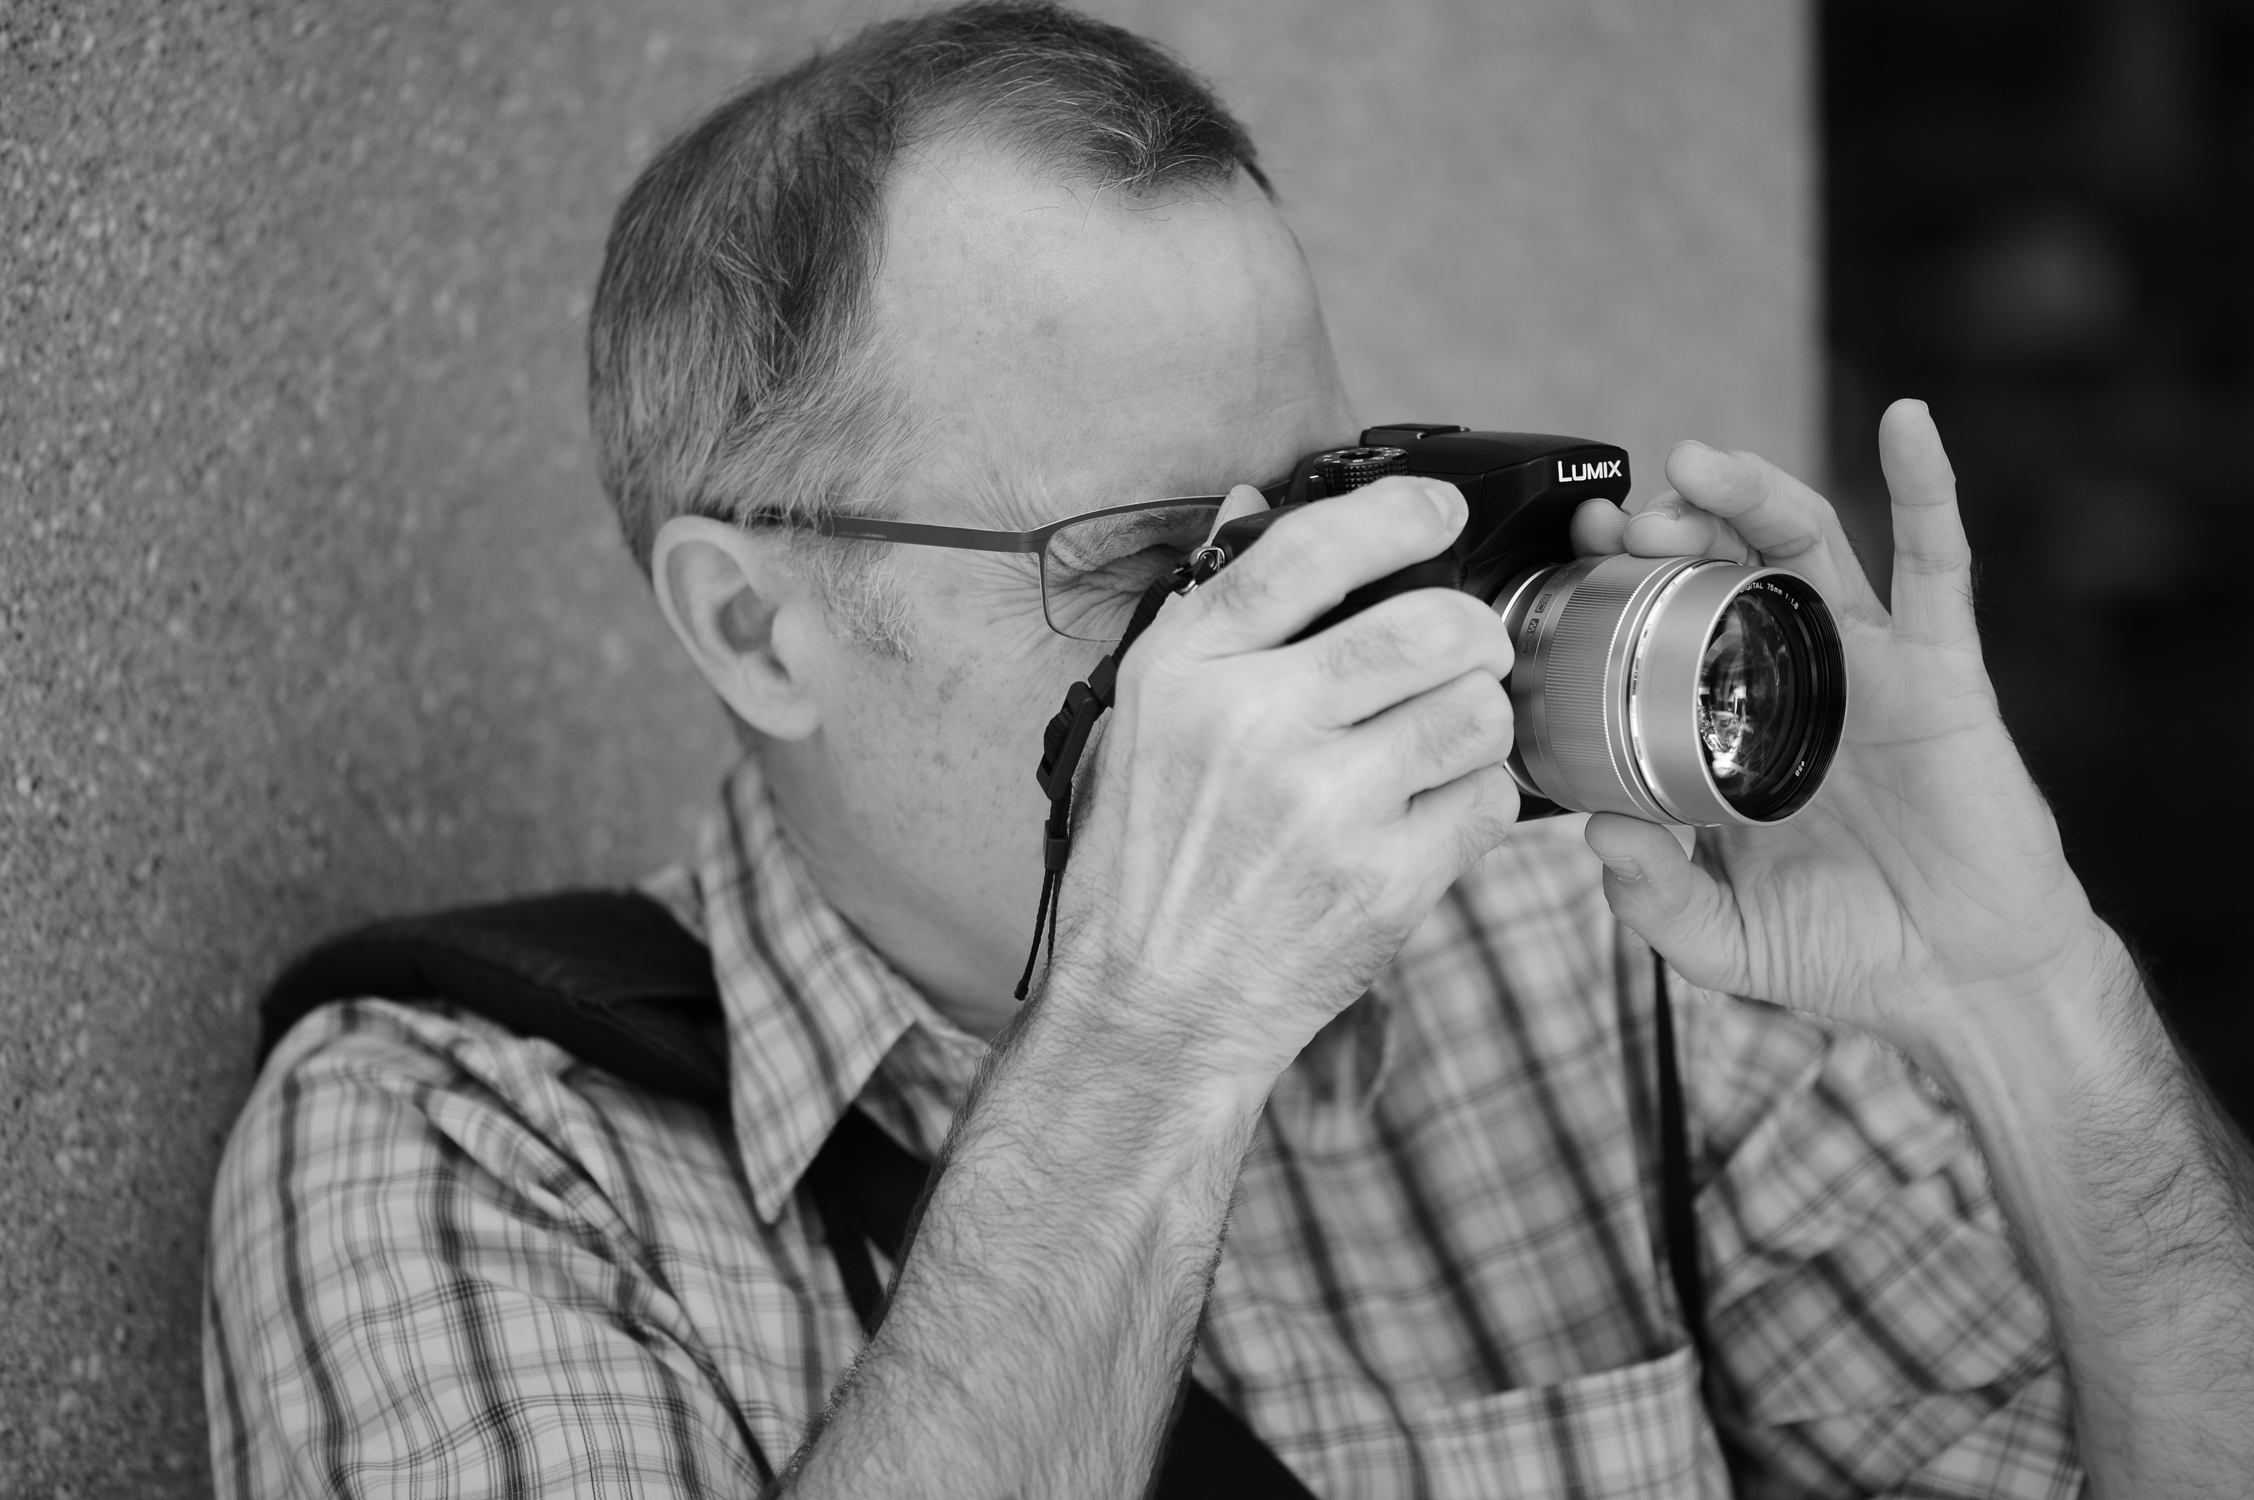 Nikon Df, 105mm f/2.8 Micro VR lens, f/3, 1/800s, ISO 320, in-camera monochrome with yellow filter.